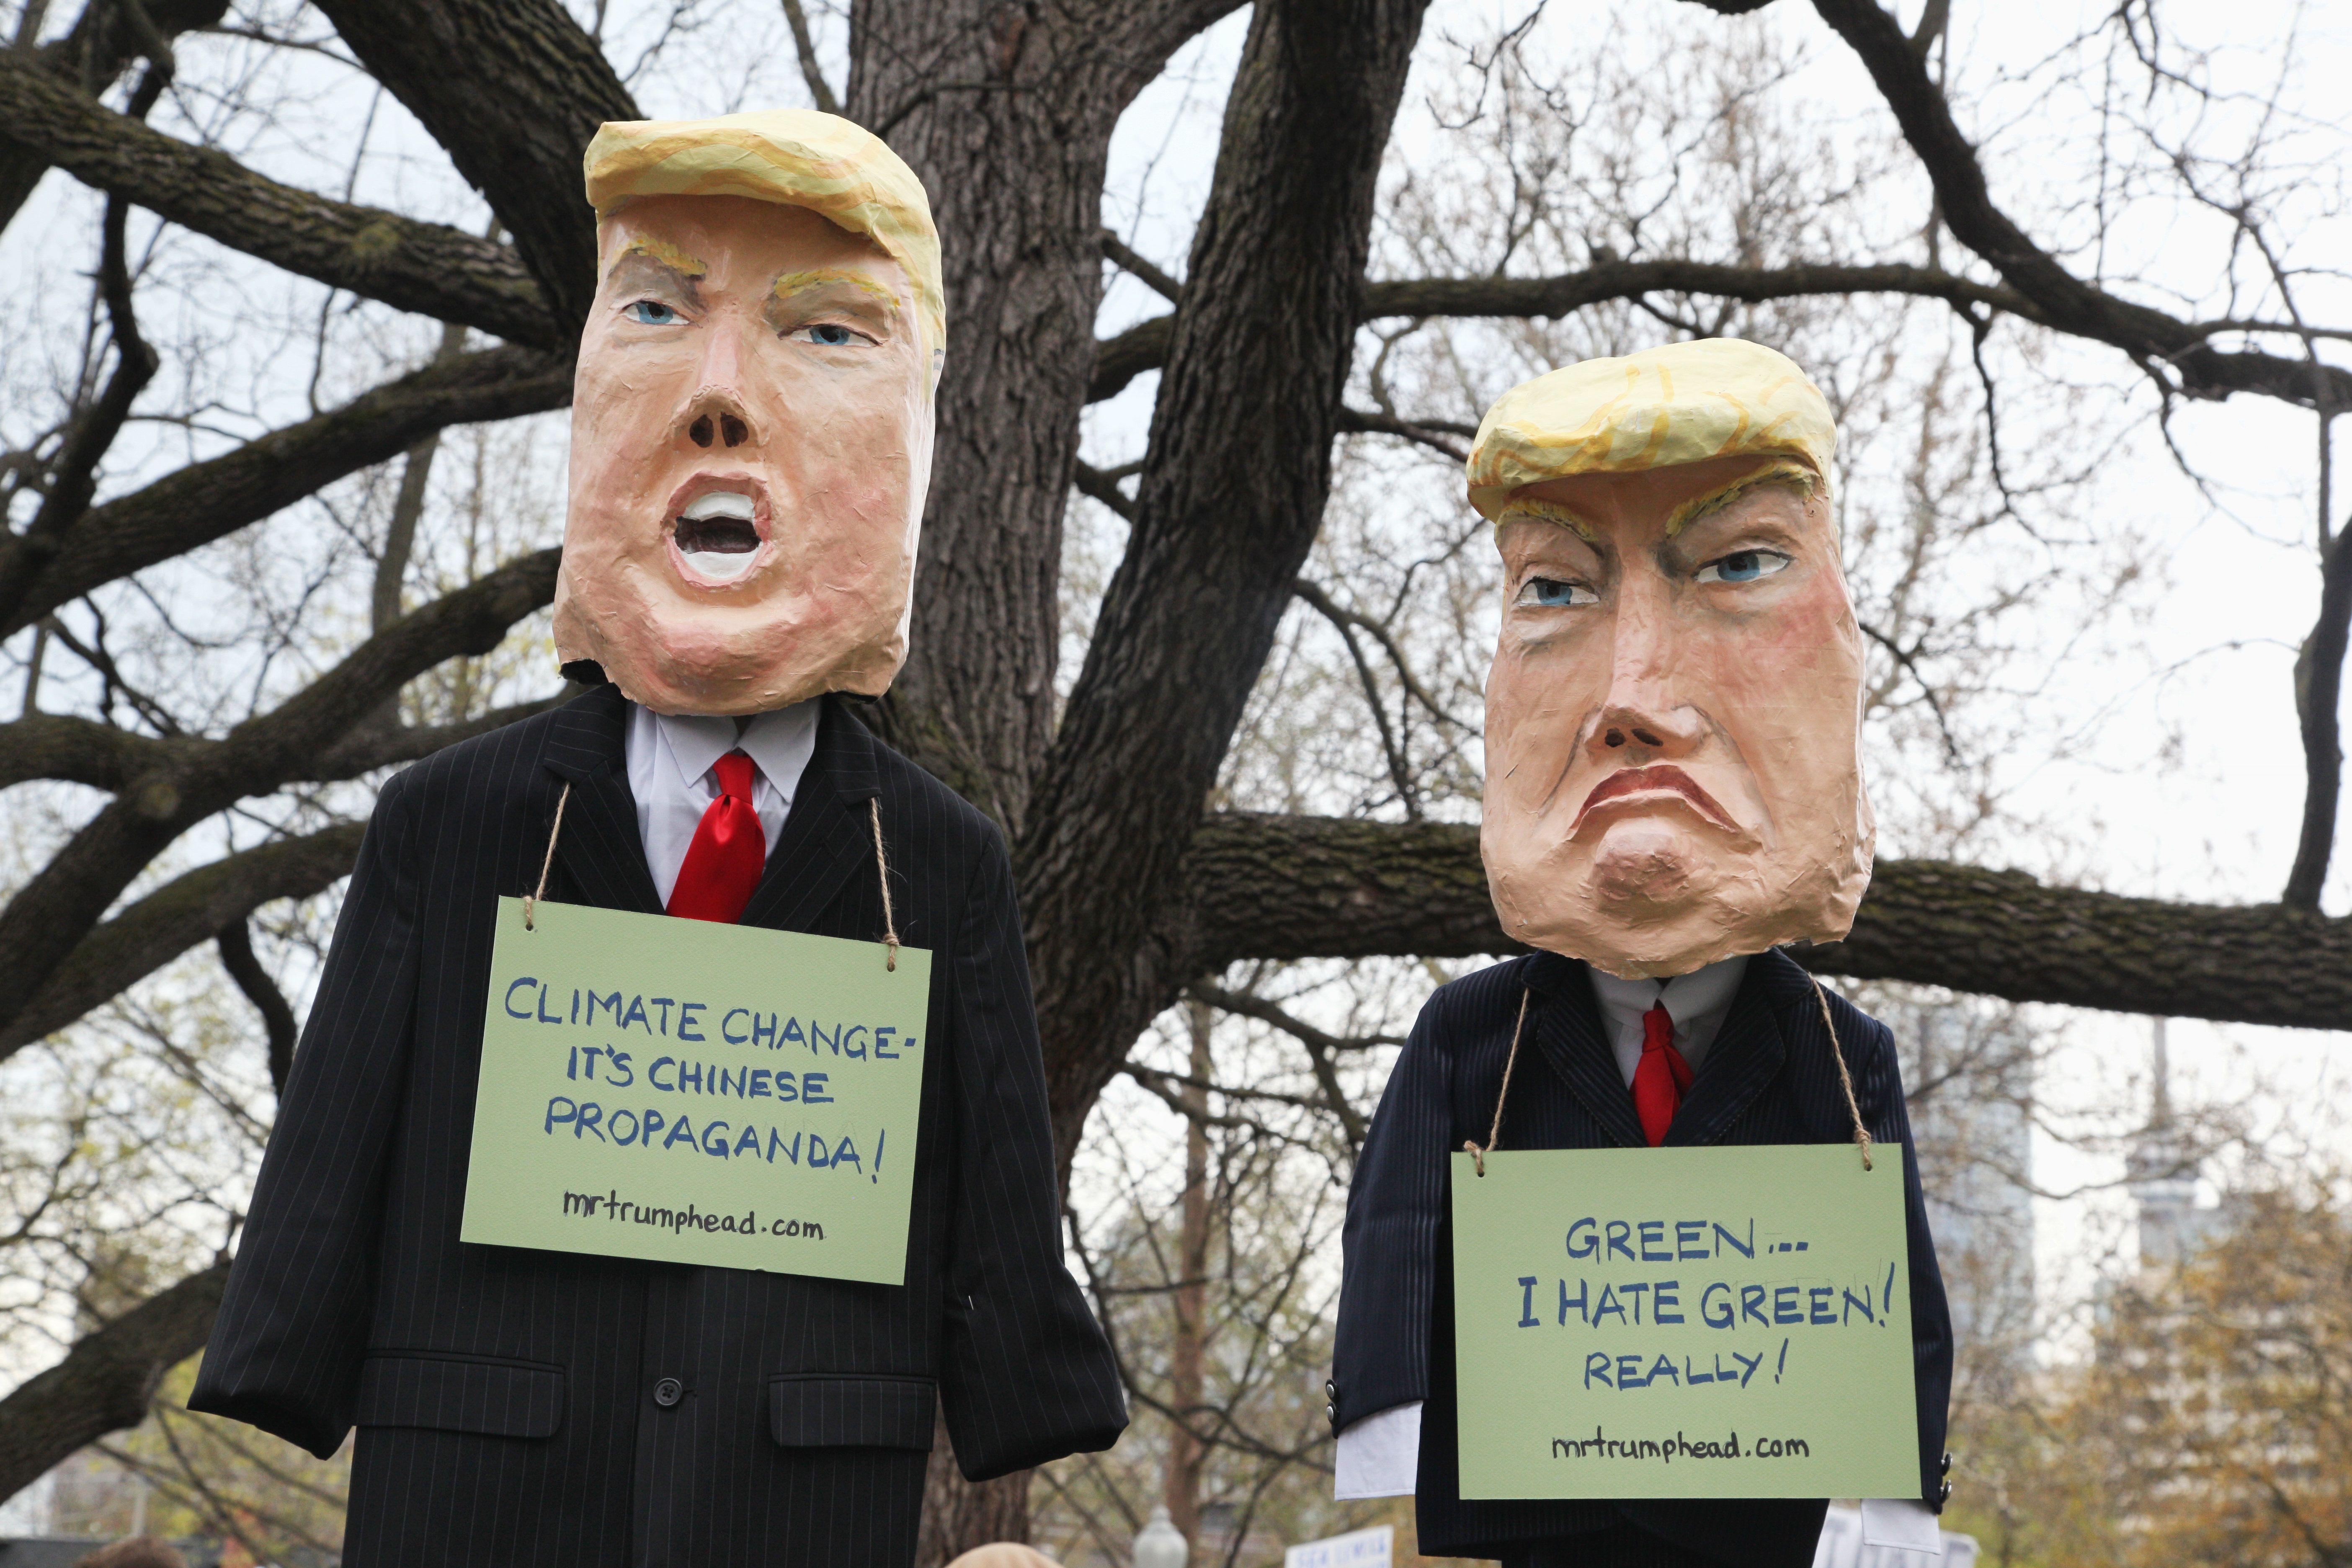 Effigies of Donald Trump during a massive march against climate change as part of the North American Day of Action in downtown Toronto, Ontario, Canada, on April 29, 2017. This march took place during U.S. President Donald Trump's 100th day in office and formed part of a North American Day of Action initiated by The People's Climate Movement. A massive march against climate change took place in Washington D.C. along with sister marches across the world. (Photo by Creative Touch Imaging Ltd./NurPhoto via Getty Images)